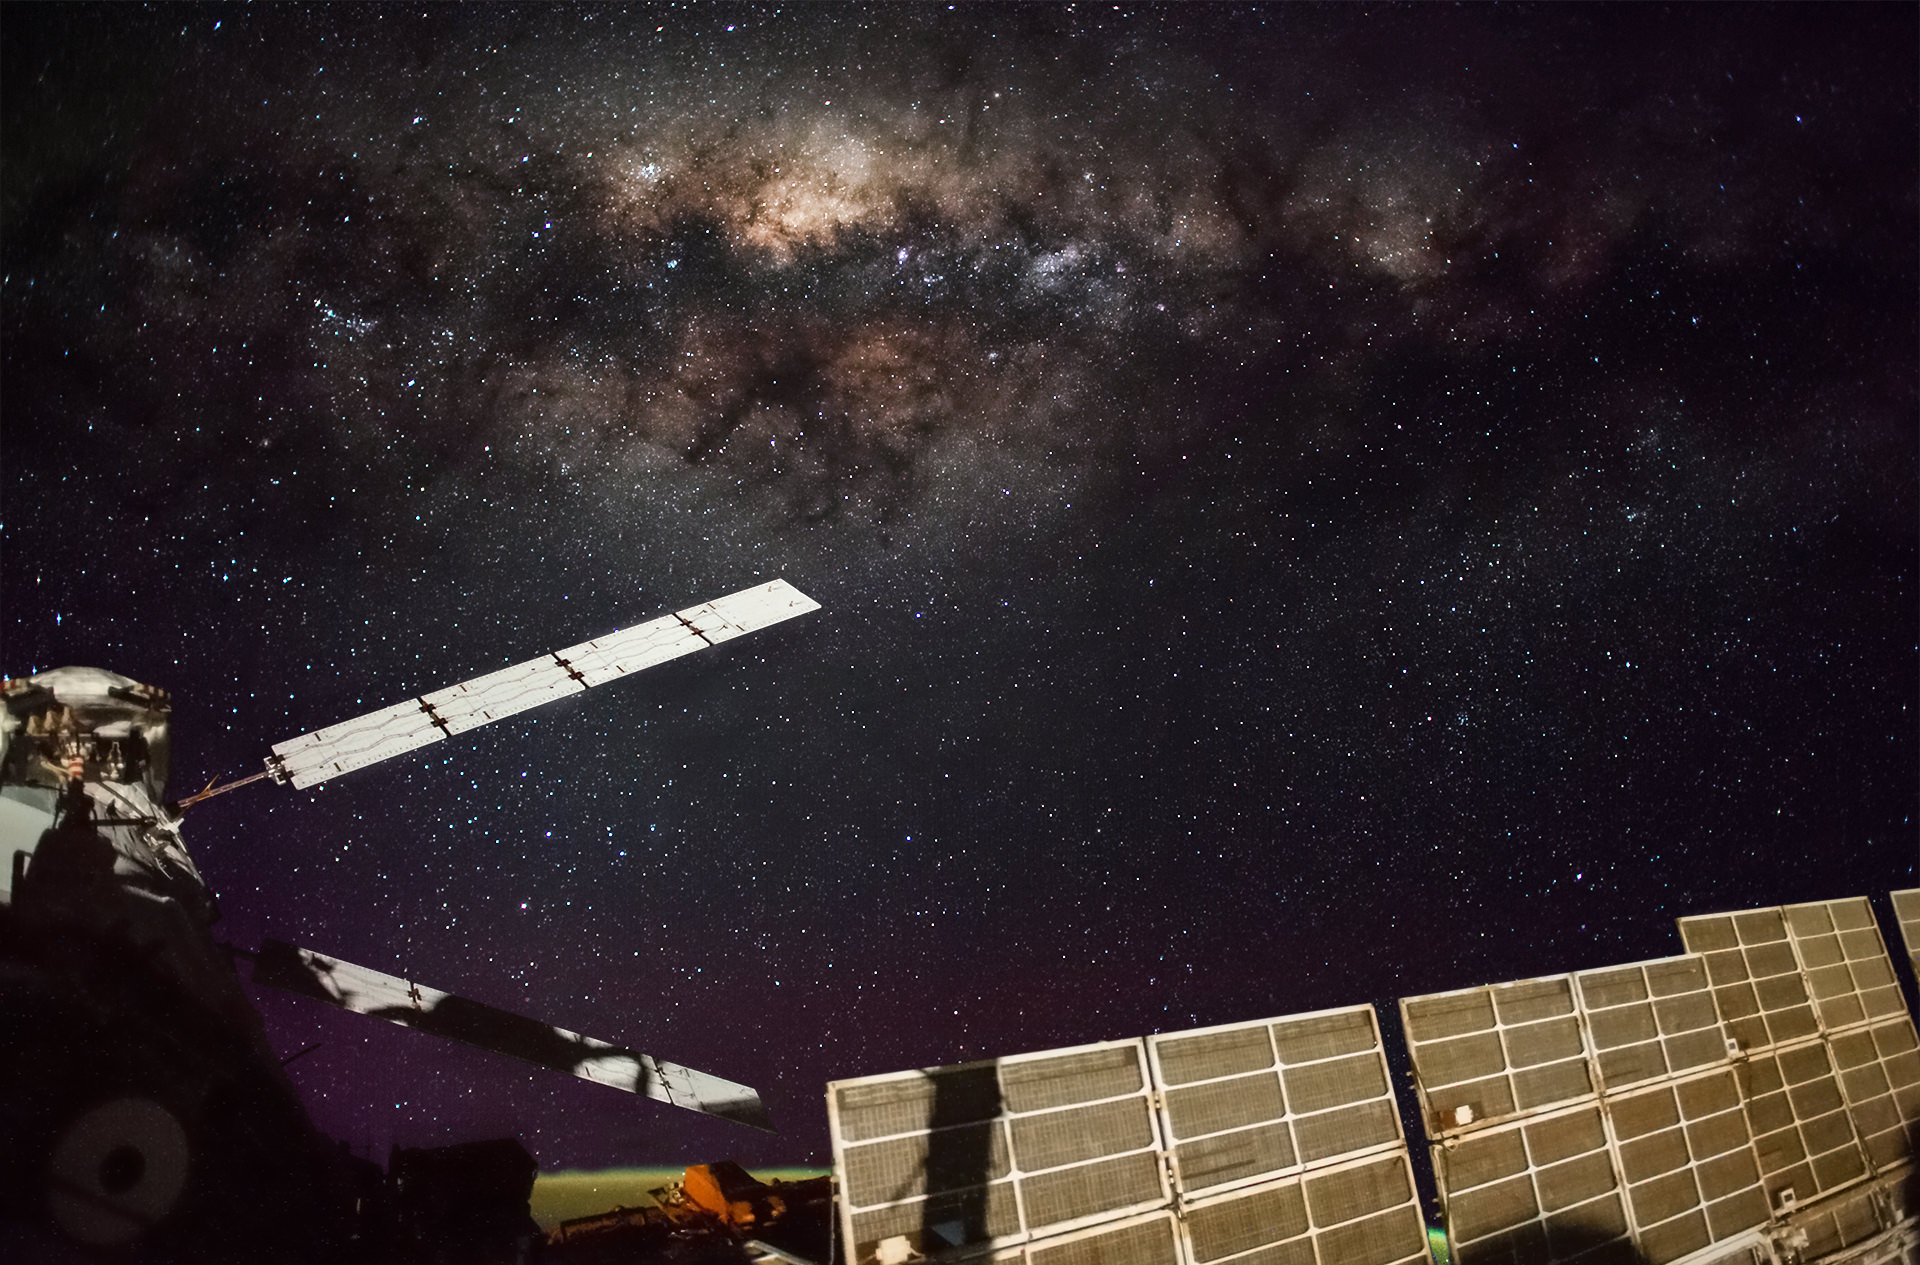 The Milky Way above the International Space Station's solar panels. Credit: NASA/NASA Crew Earth Observations